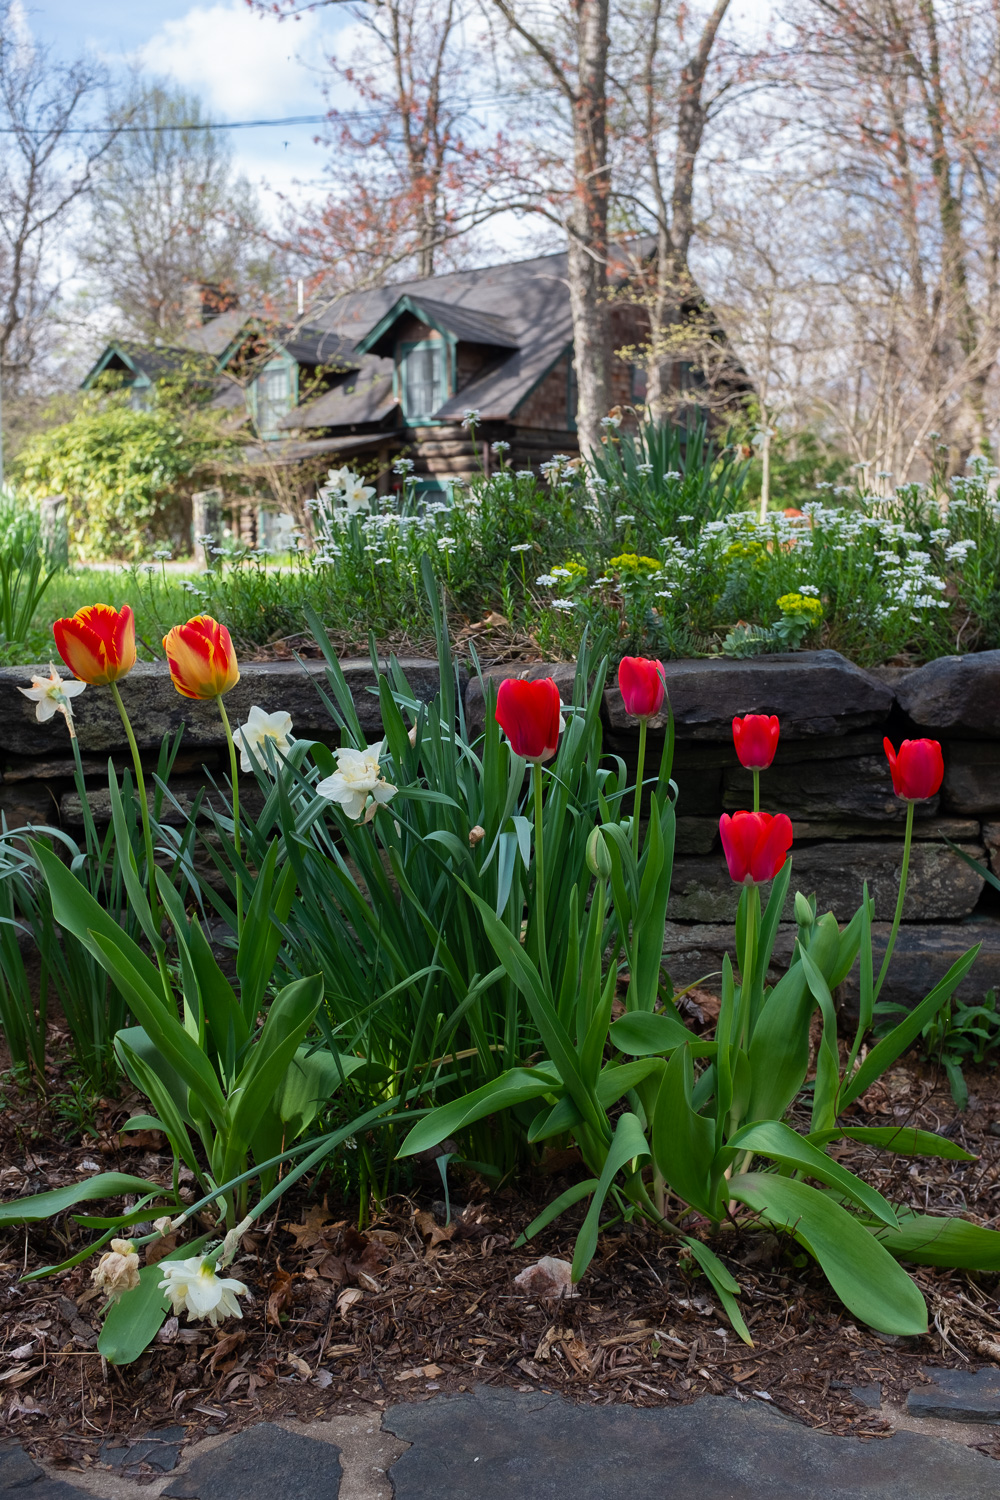 Tulips in bloom at Penland.